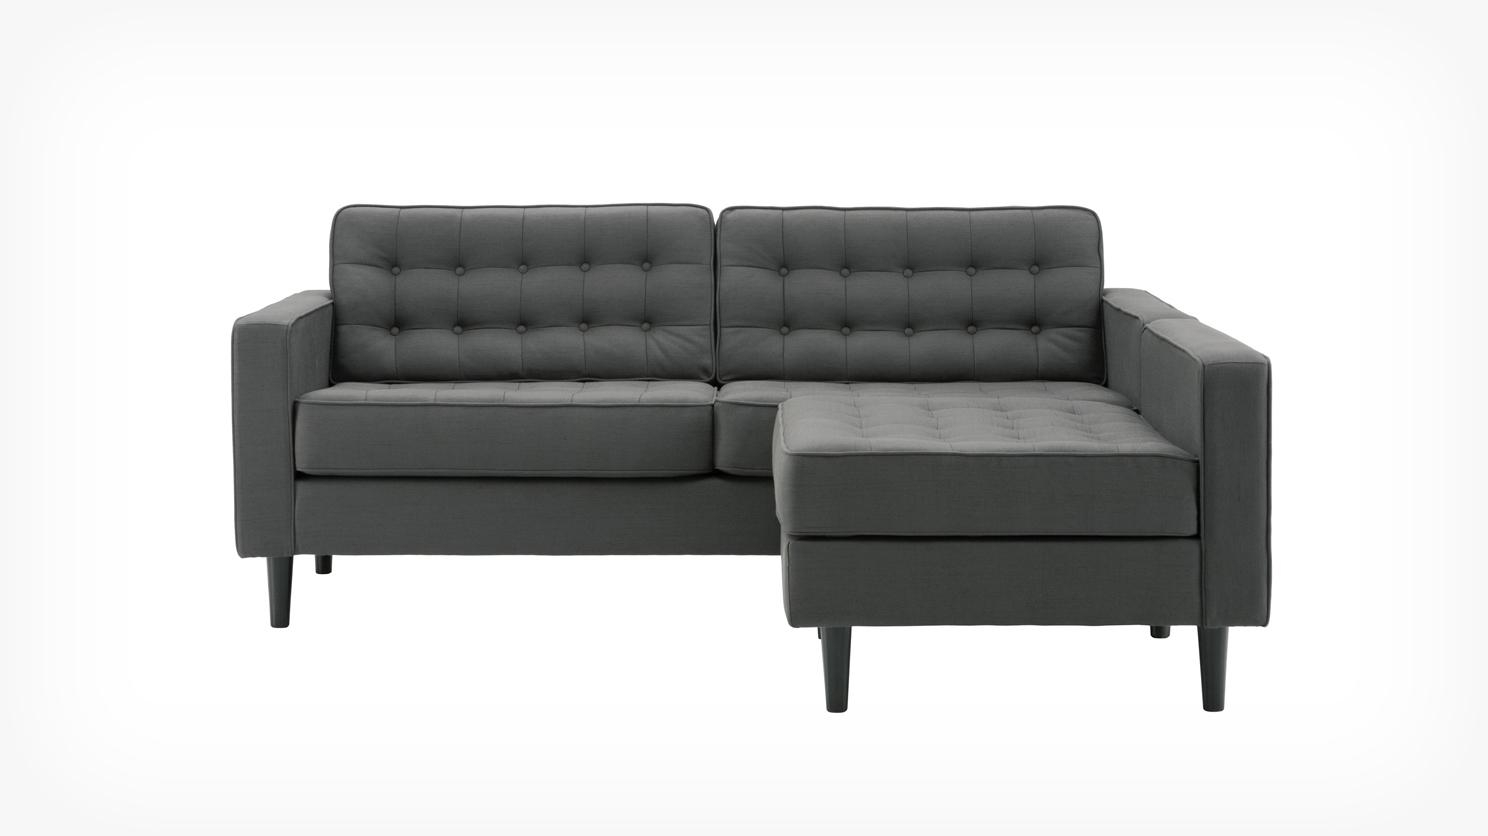 Eq3 | Reverie Apartment 2 Piece Sectional Sofa With Chaise – Fabric With 2 Piece Sofas (Image 8 of 20)